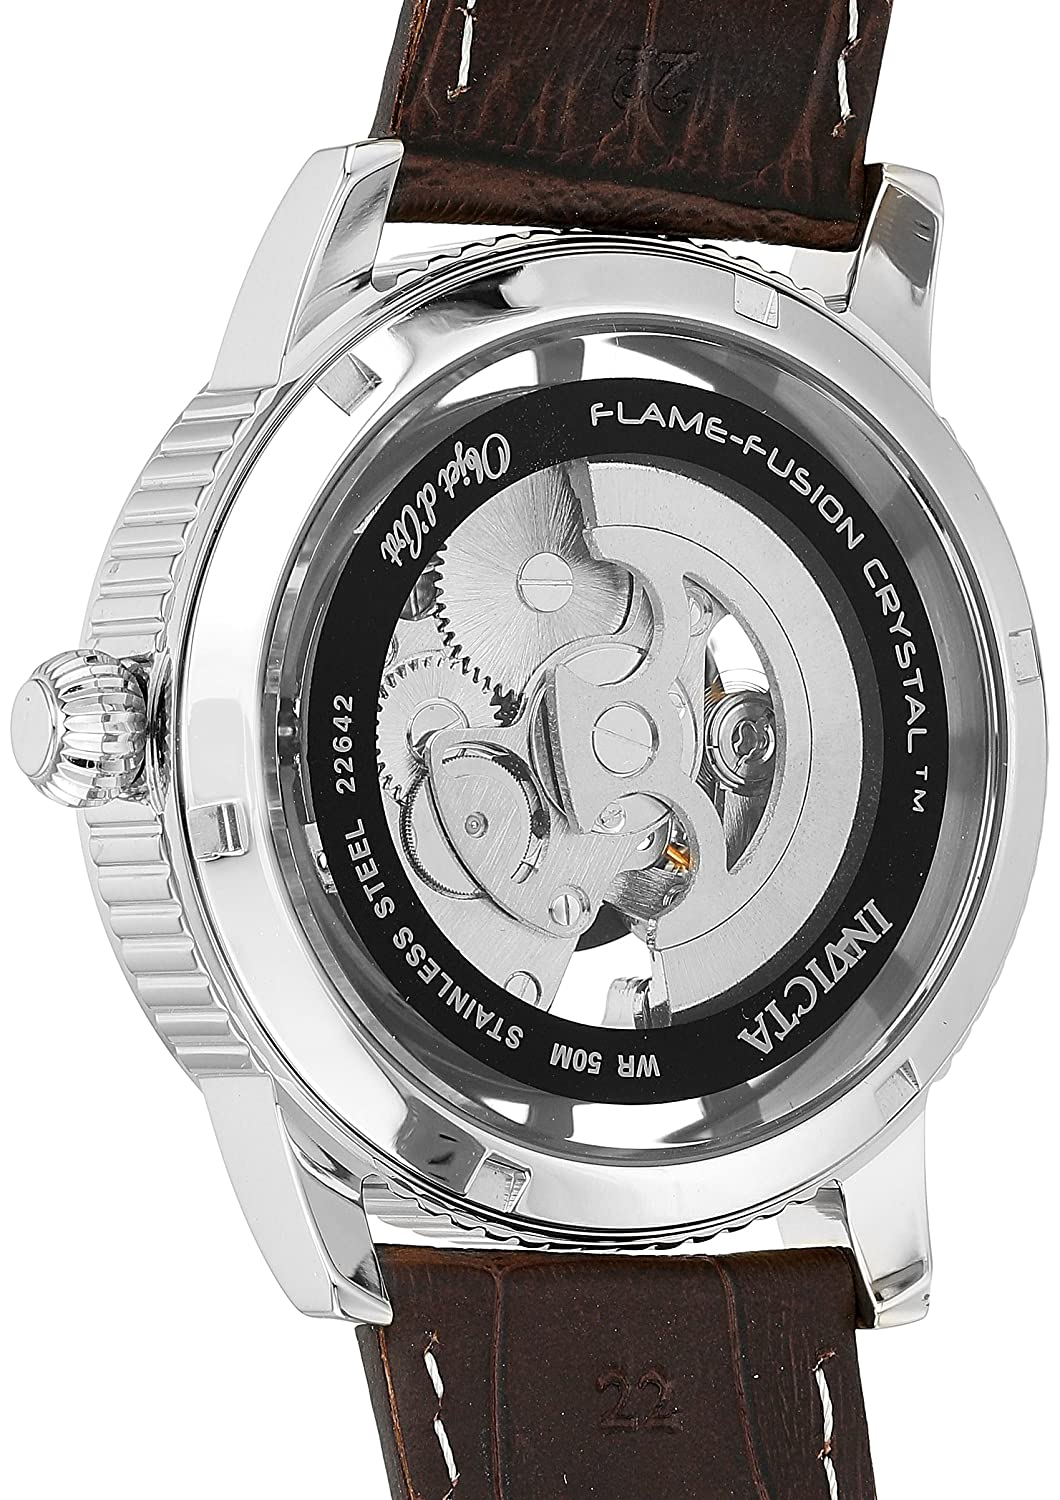 Amazon.com: Invicta Mens Objet dArt Stainless Steel Automatic-self-Wind Watch with Leather-Calfskin Strap, Black, 22 (Model: 22641: Invicta: Watches